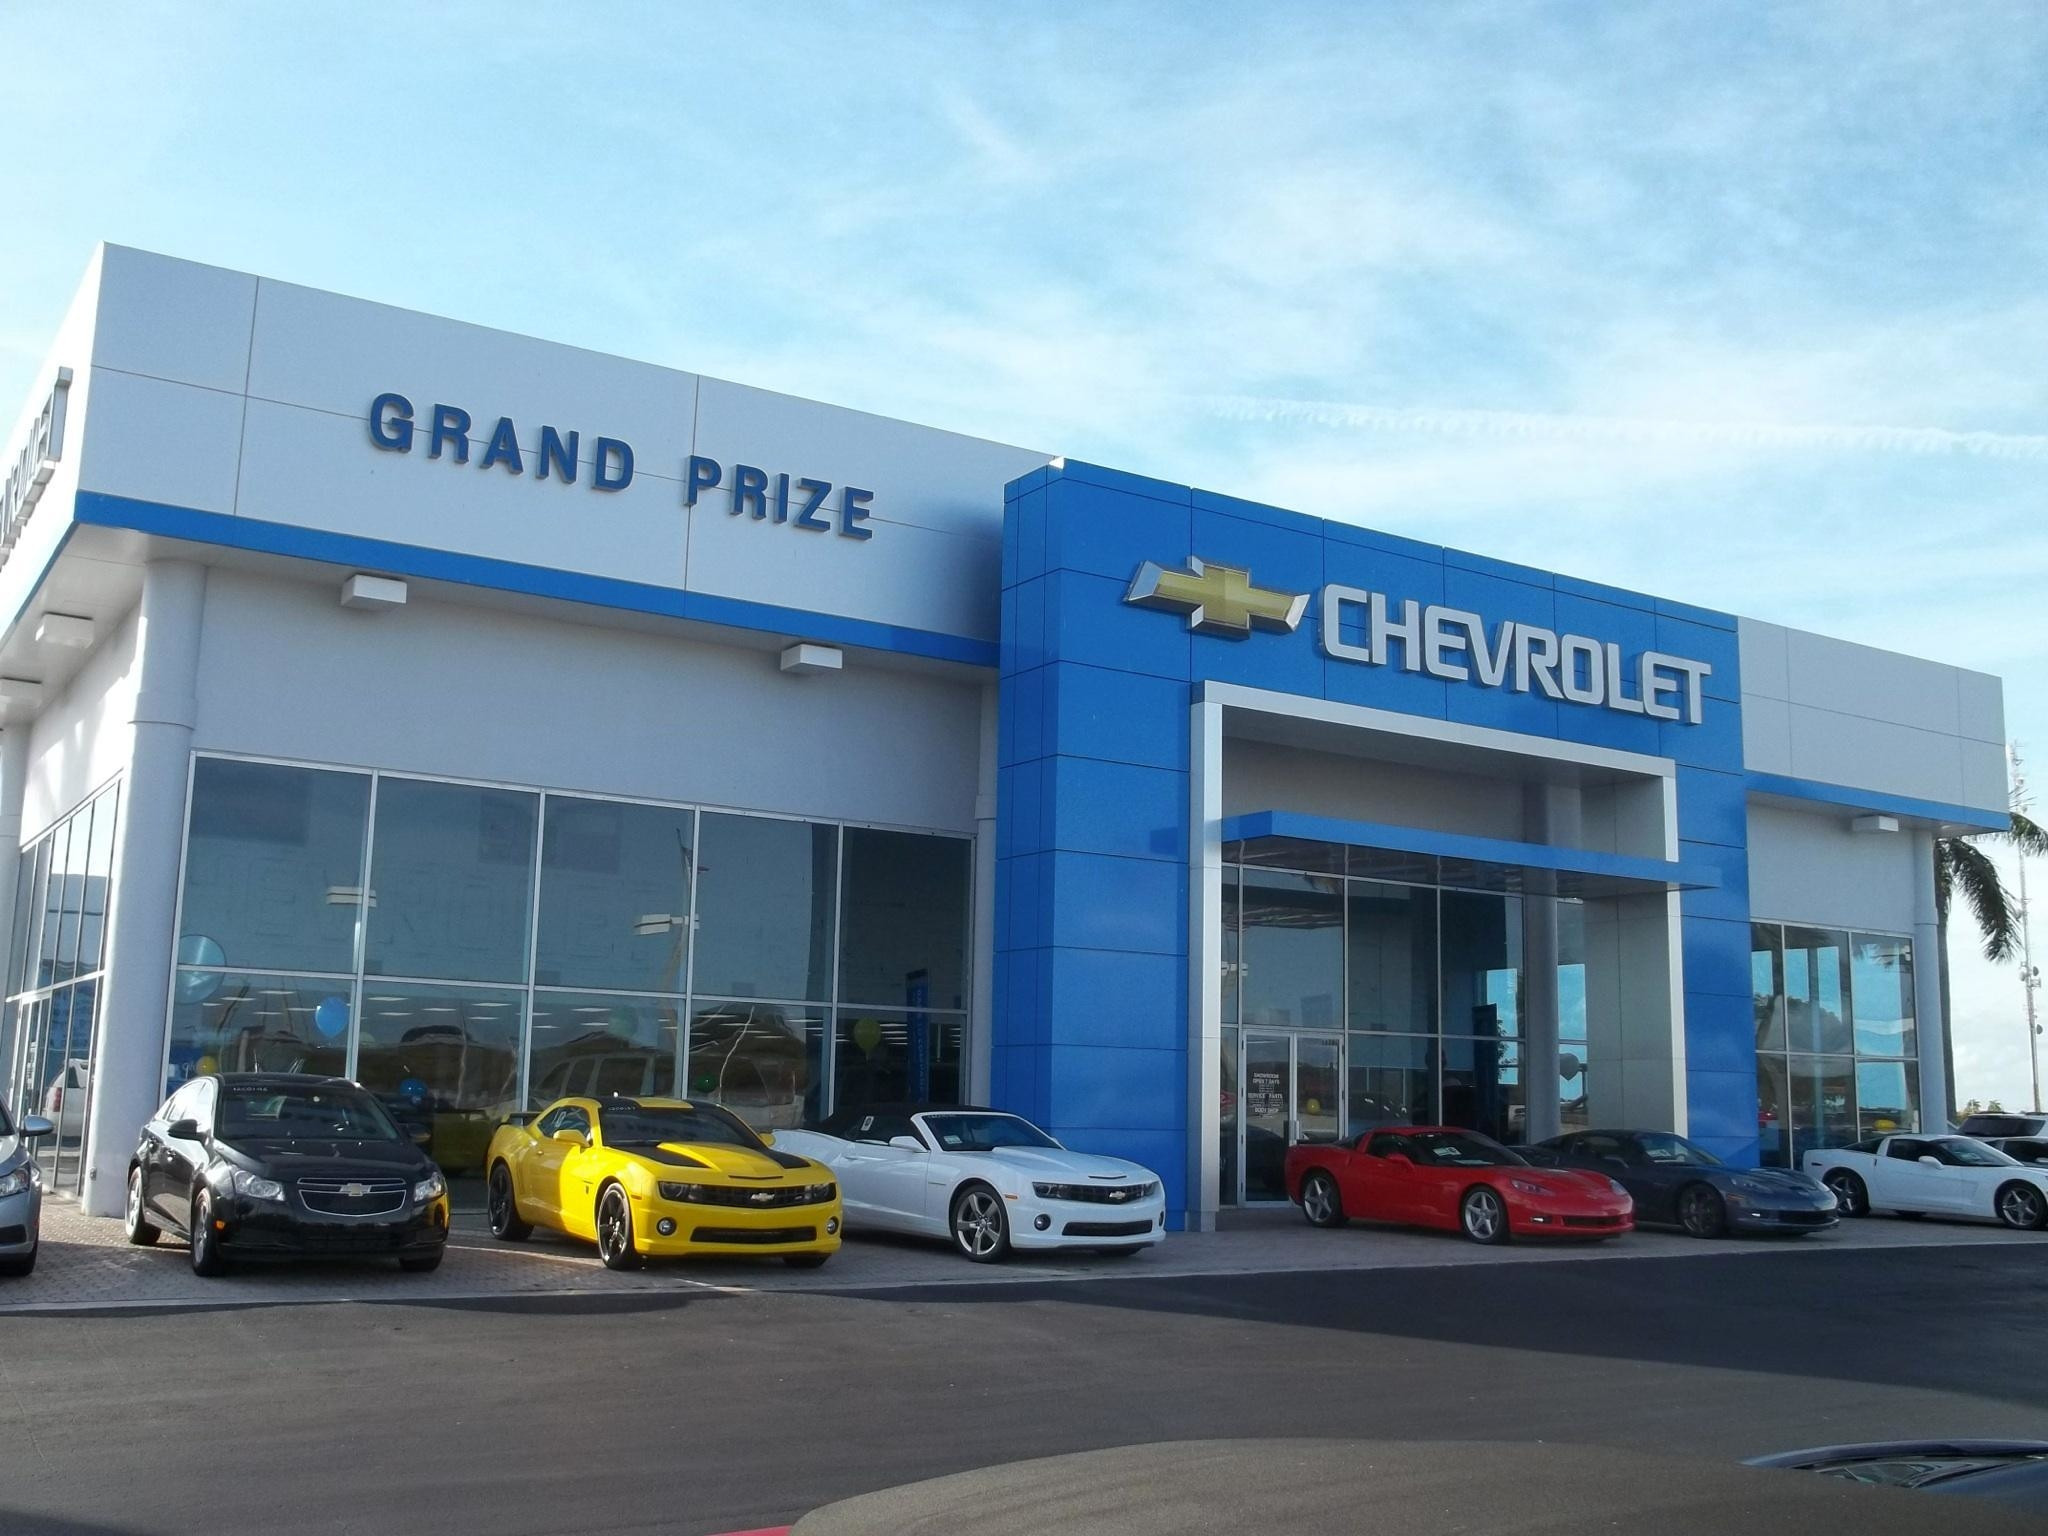 grand prize chevrolet en miami fl negocios. Cars Review. Best American Auto & Cars Review